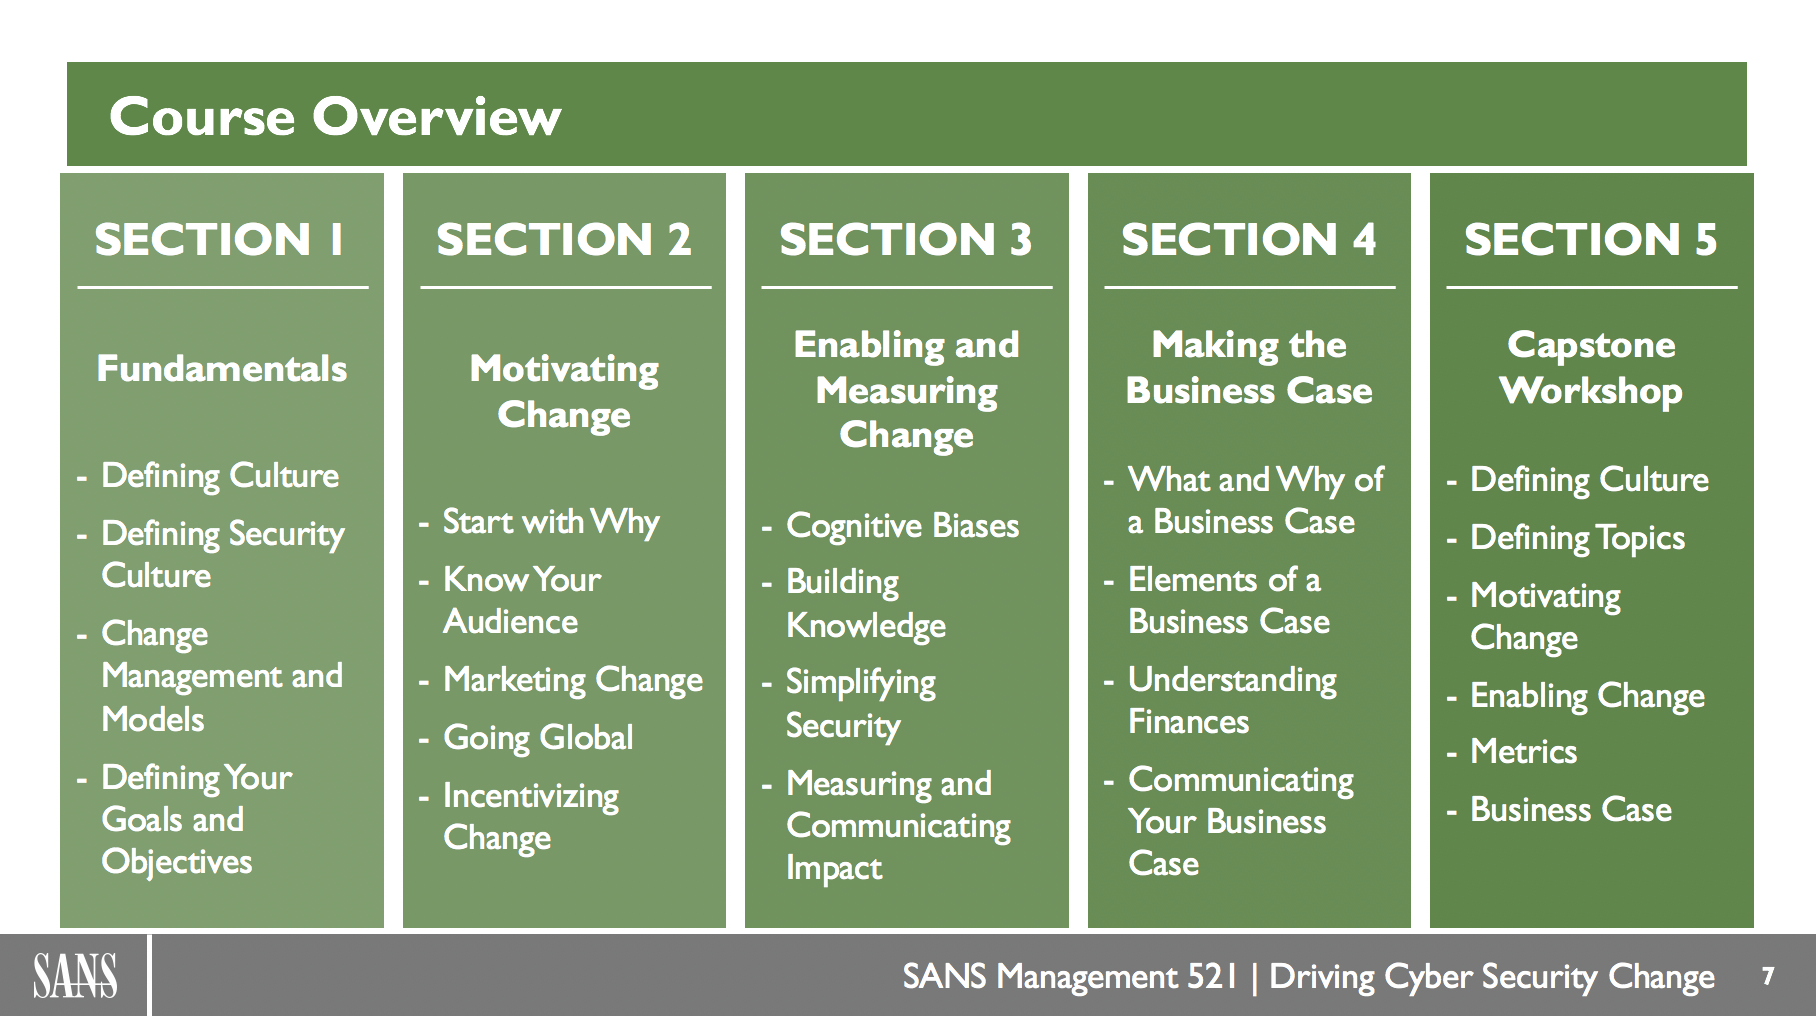 MGT521-CourseOverview.png